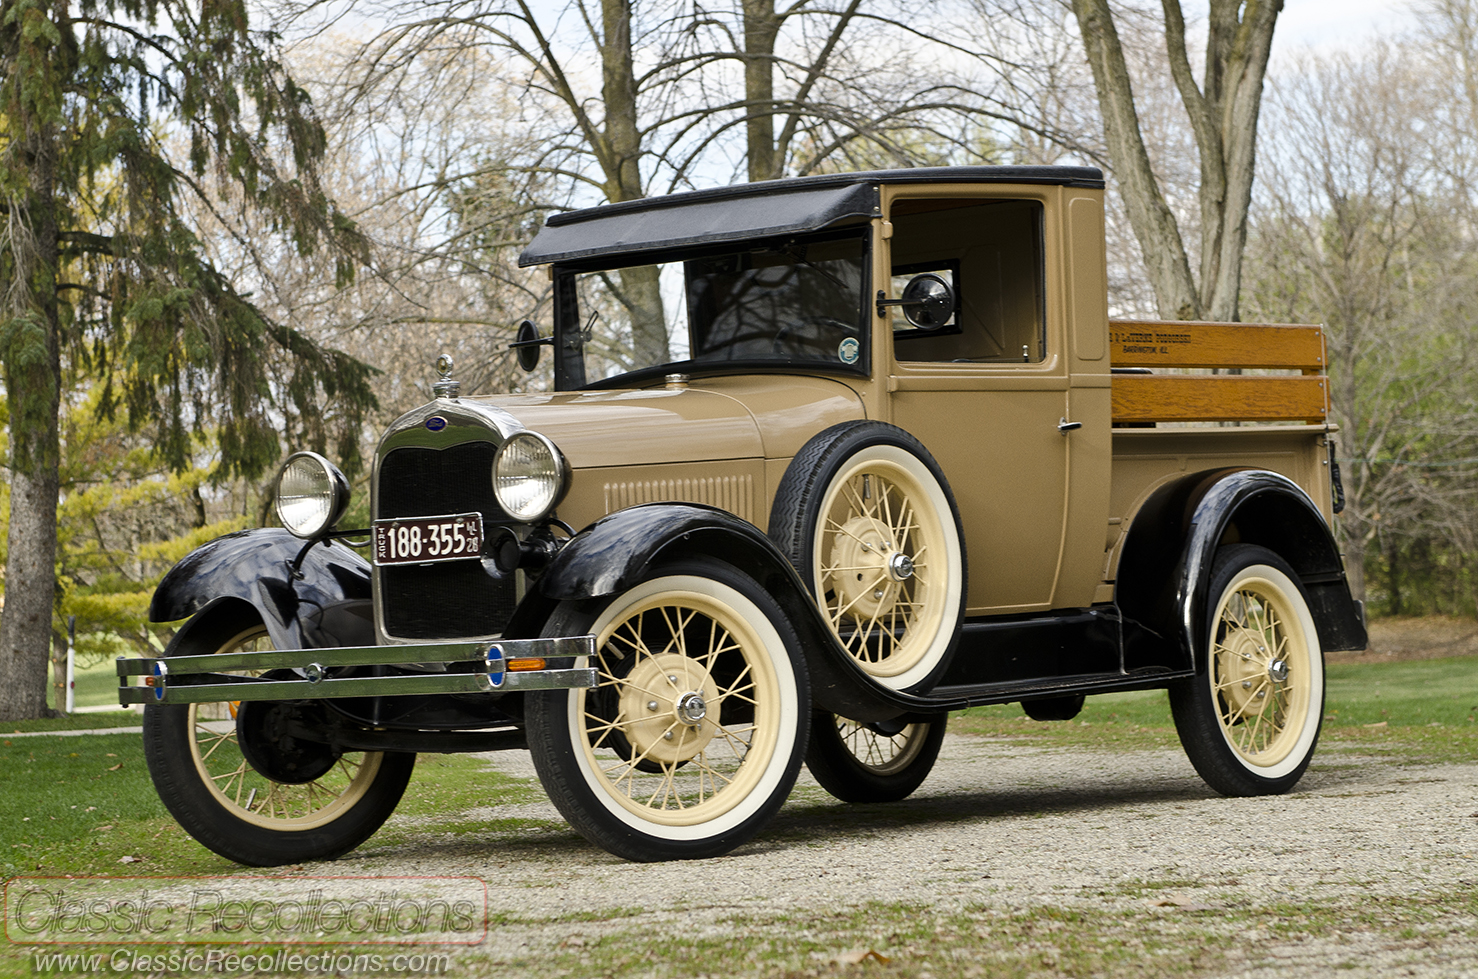 1930 Pickup Truck >> FEATURE: 1928 Ford Model A Pickup & 1930 Ford Model A Town Sedan – Classic Recollections